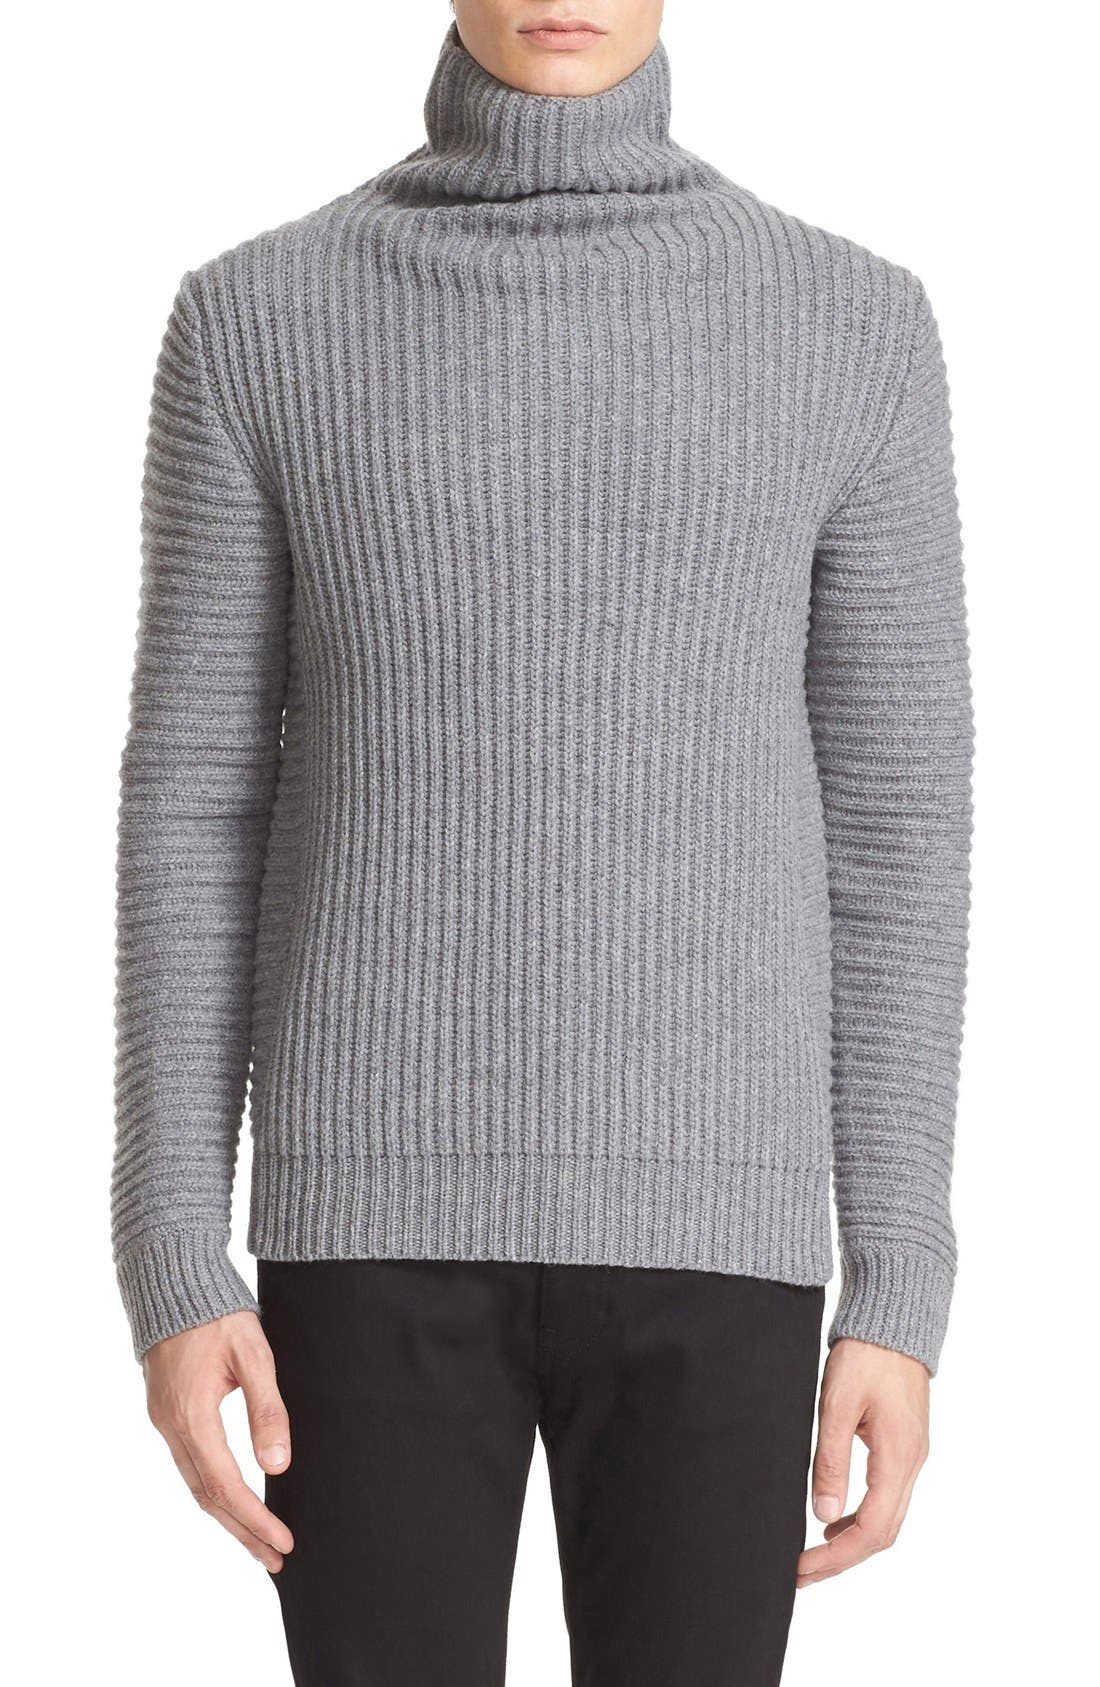 ACNE STUDIOS Kalle Ribbed Turtleneck Sweater, Main, color, 020